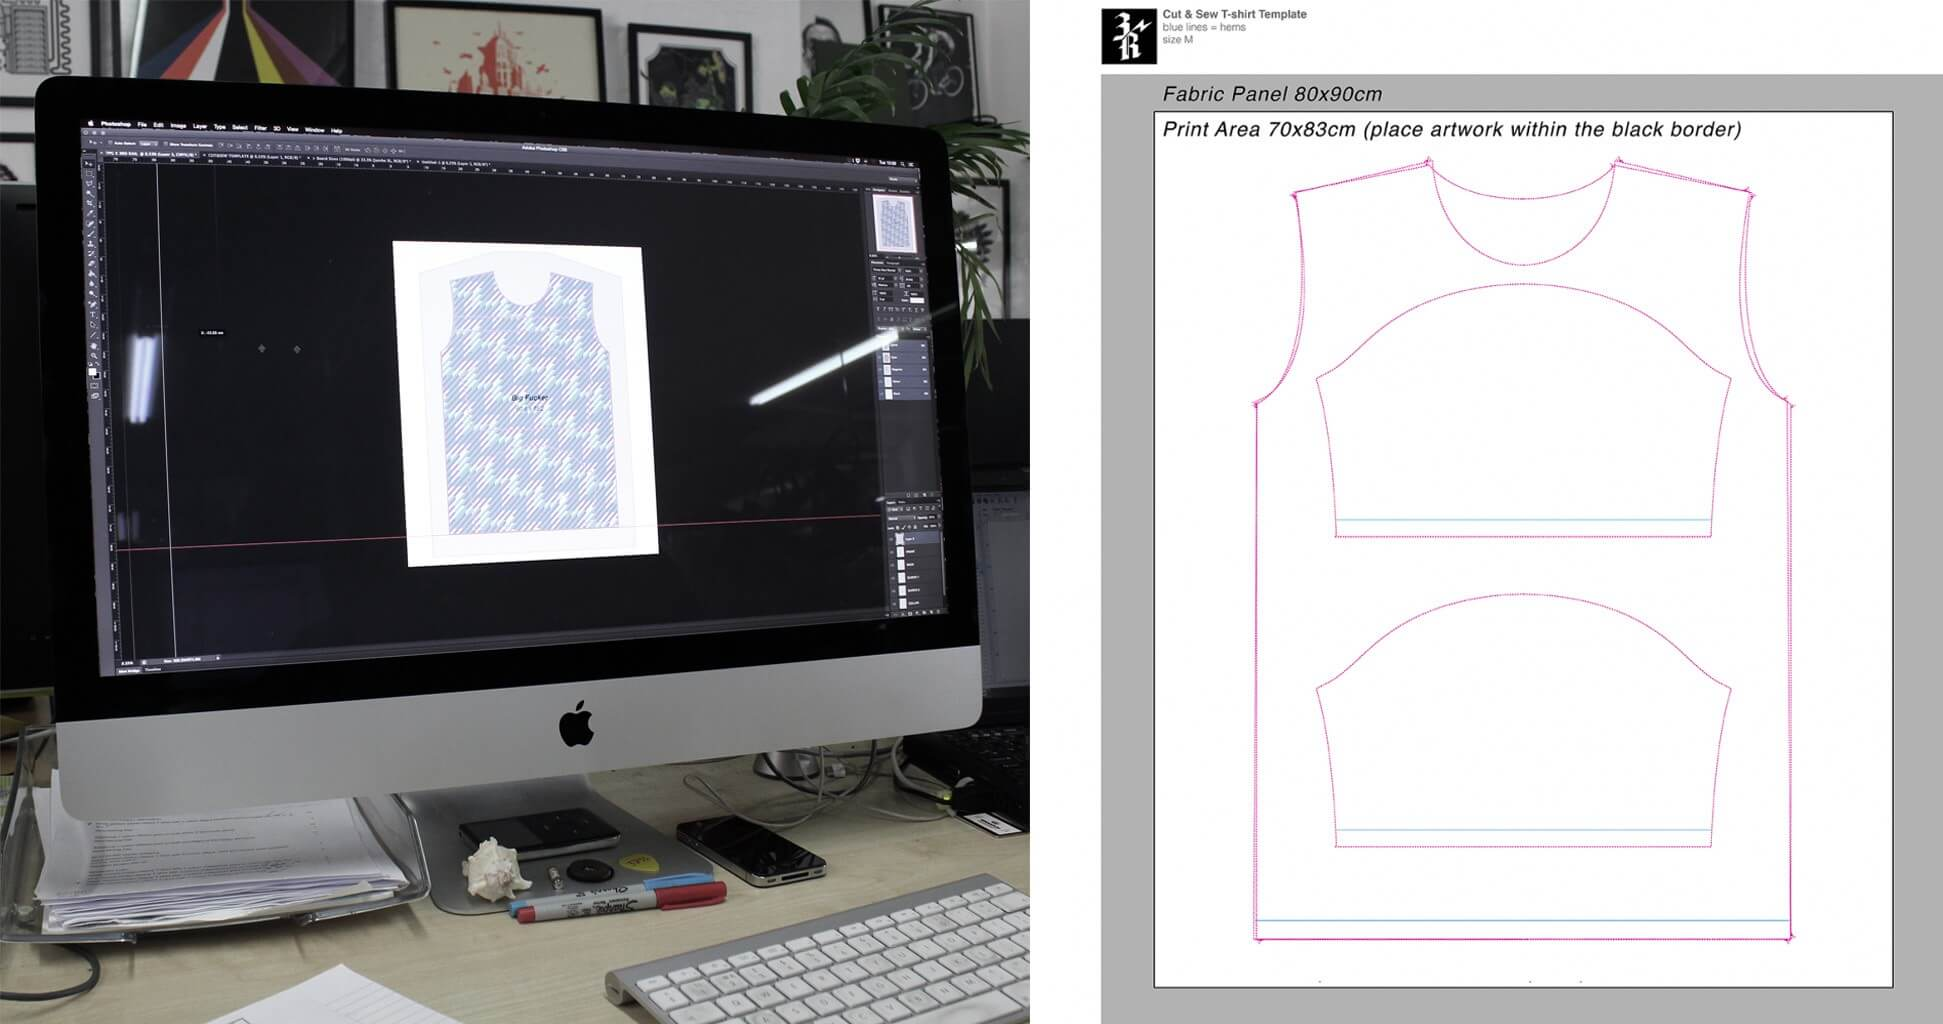 Cut and sew template